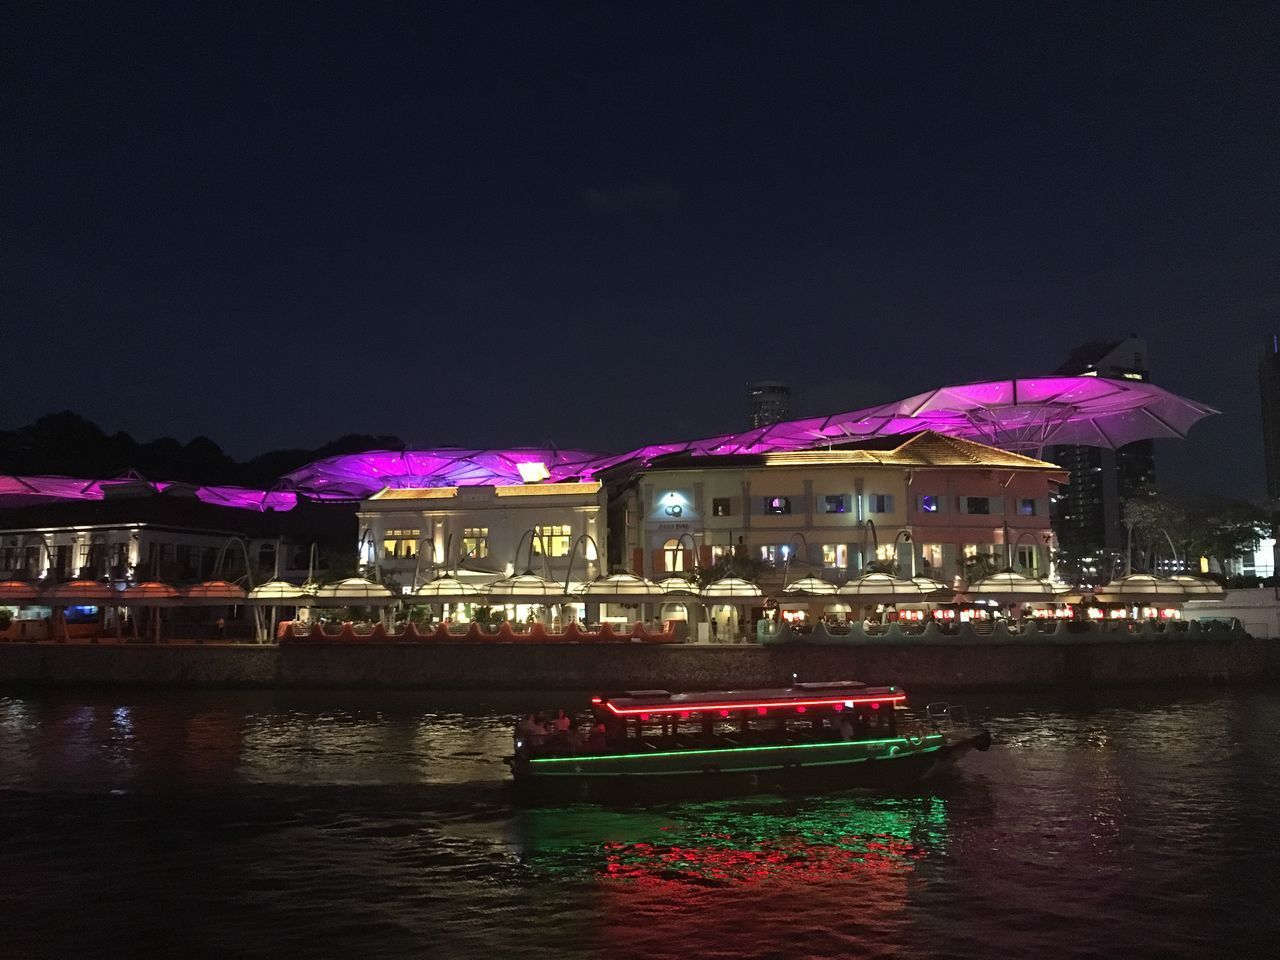 water, illuminated, night, waterfront, sky, built structure, architecture, building exterior, reflection, nautical vessel, nature, city, river, no people, transportation, mode of transportation, building, outdoors, pink color, purple